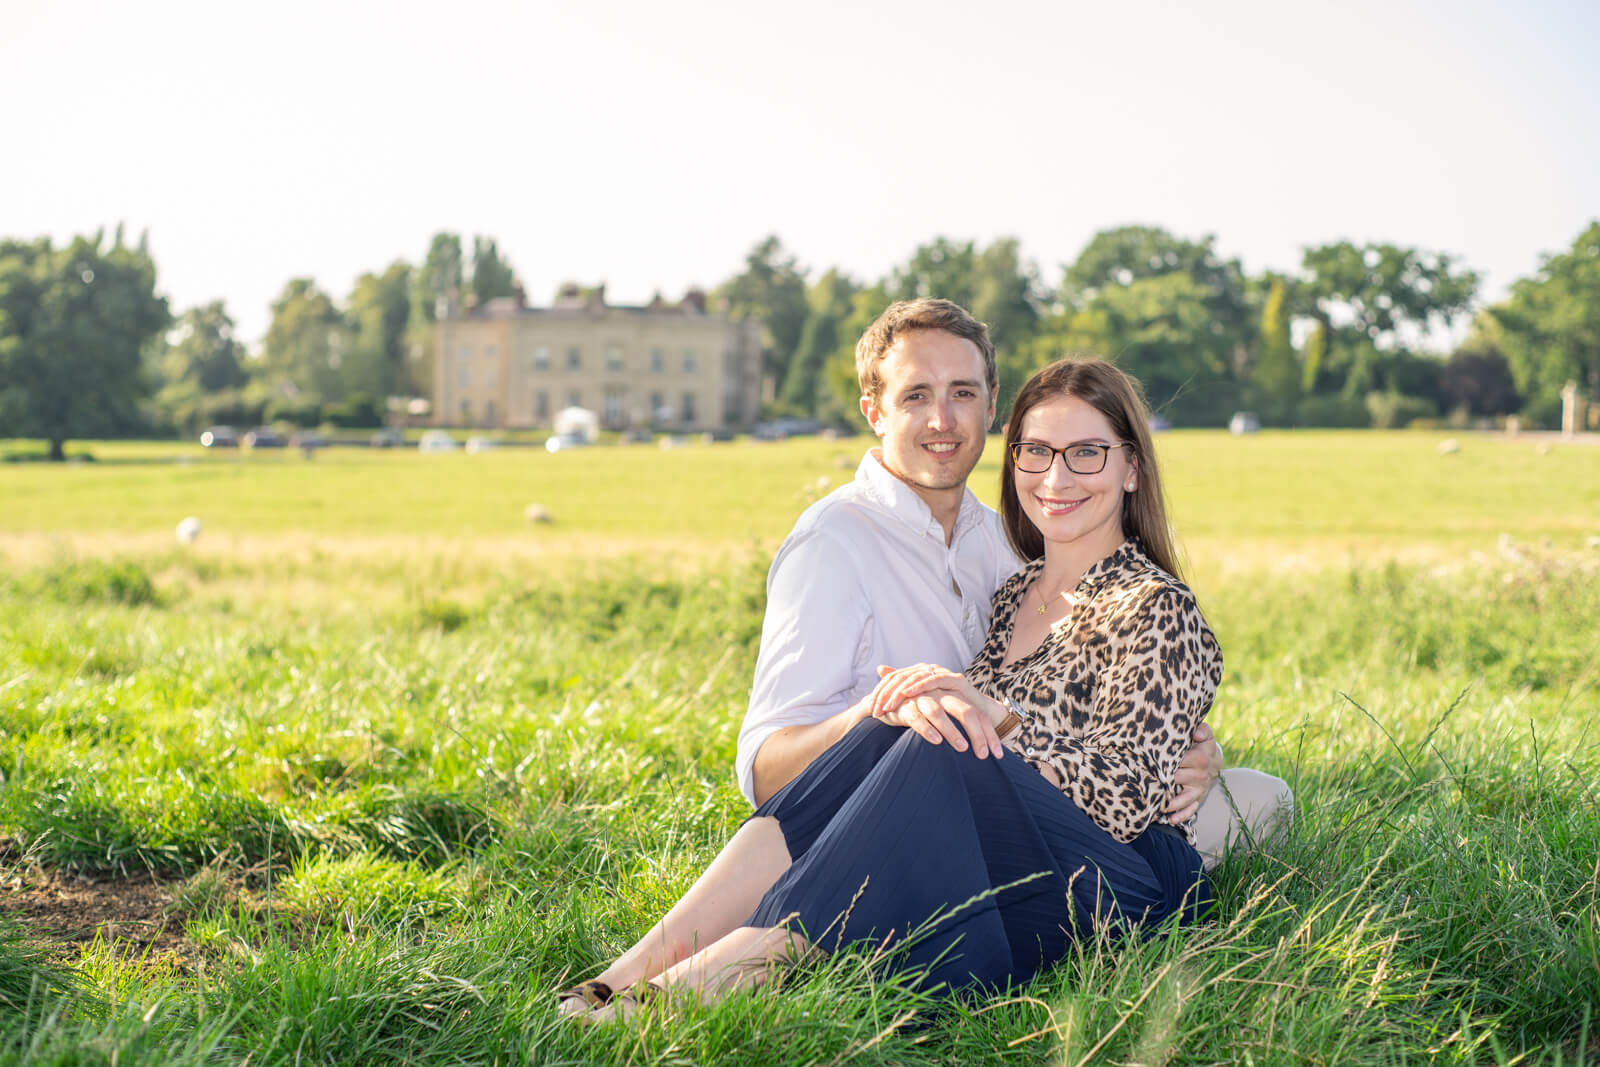 Engaged couple sit together in a grass field with a manor house in the background